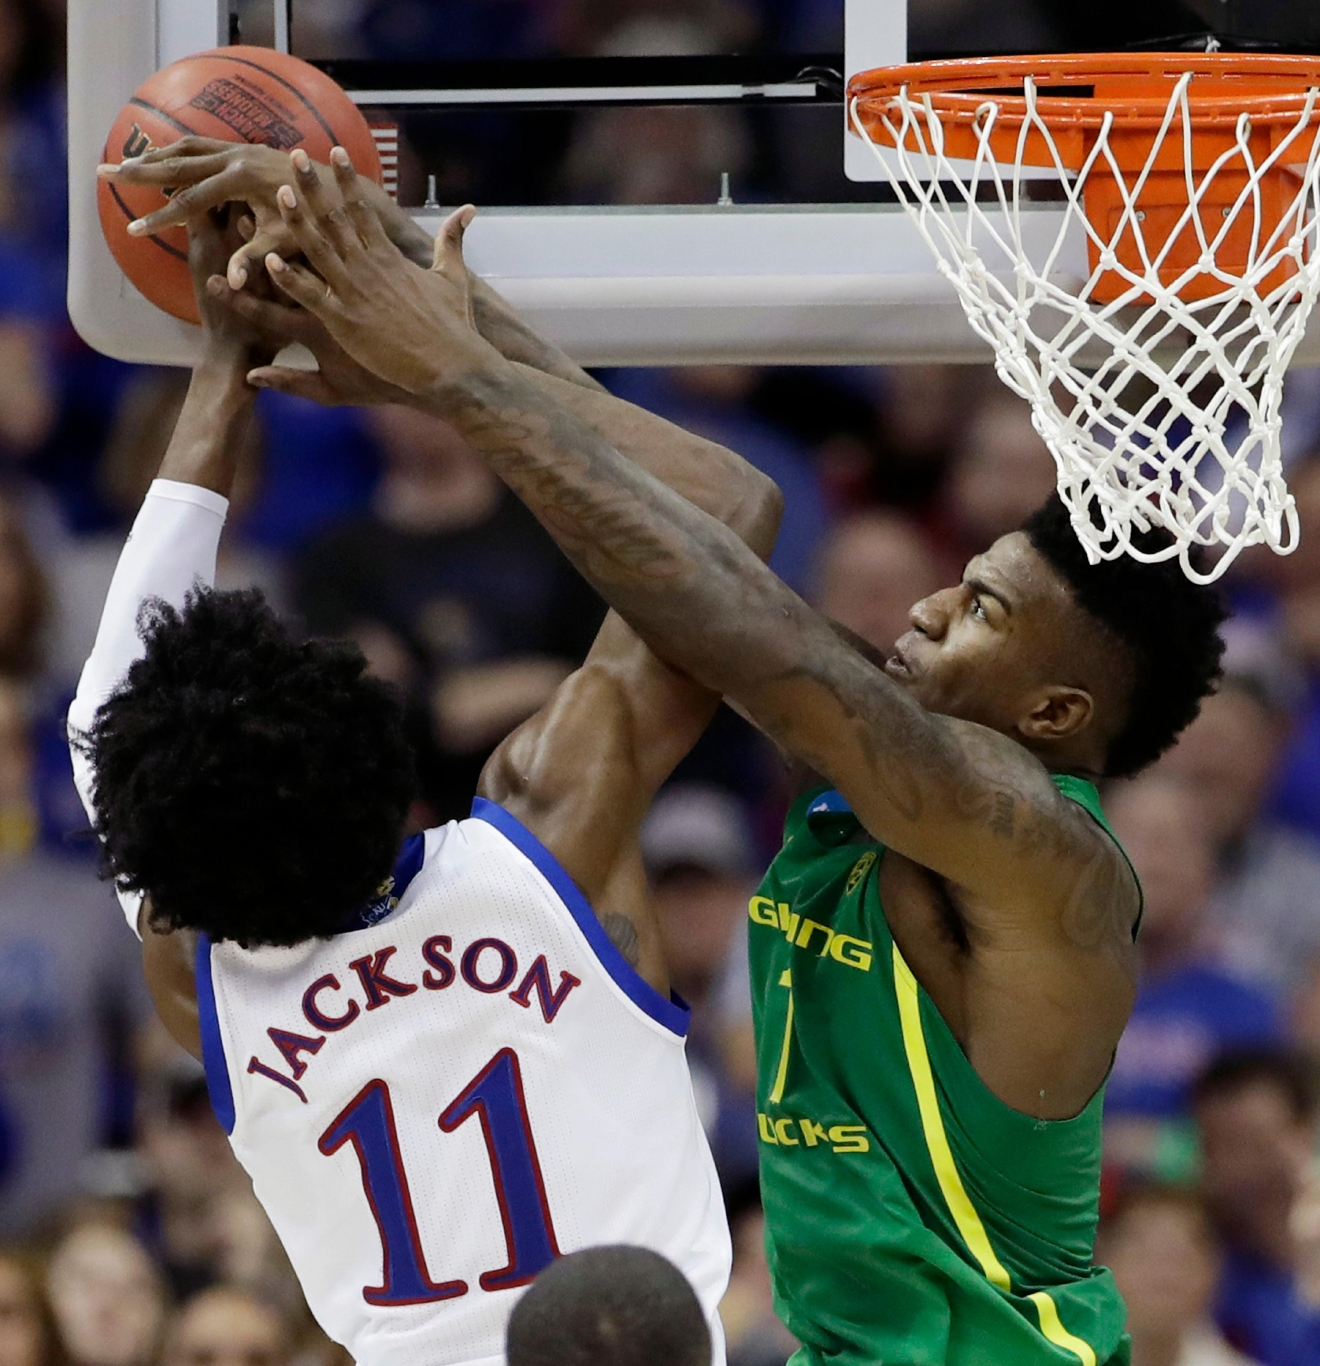 Oregon forward Jordan Bell, right, tries to block a shot by Kansas guard Josh Jackson (11) during the second half of the Midwest Regional final of the NCAA men's college basketball tournament, Saturday, March 25, 2017, in Kansas City, Mo. (AP Photo/Charlie Riedel)